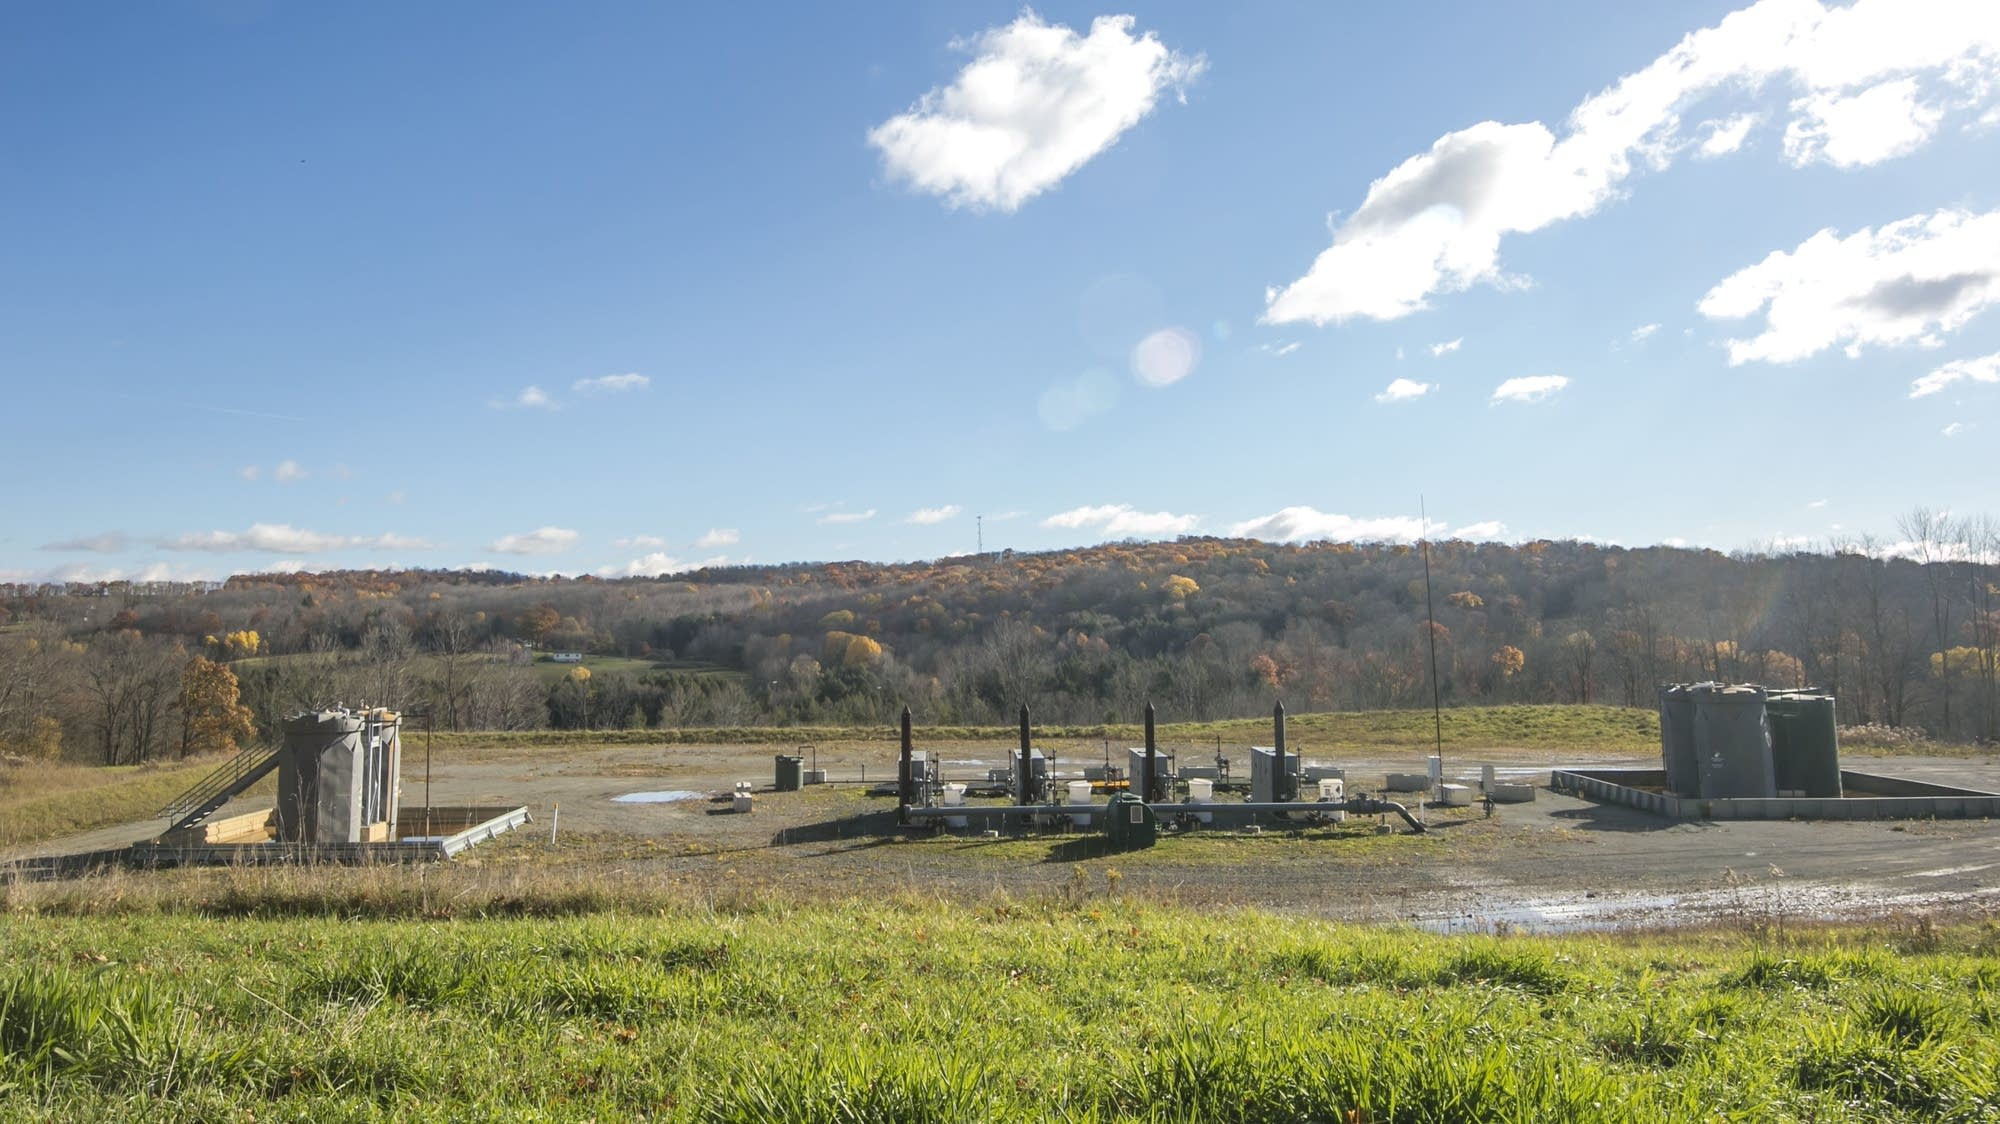 A natural gas well pad in Dimock, Pa.